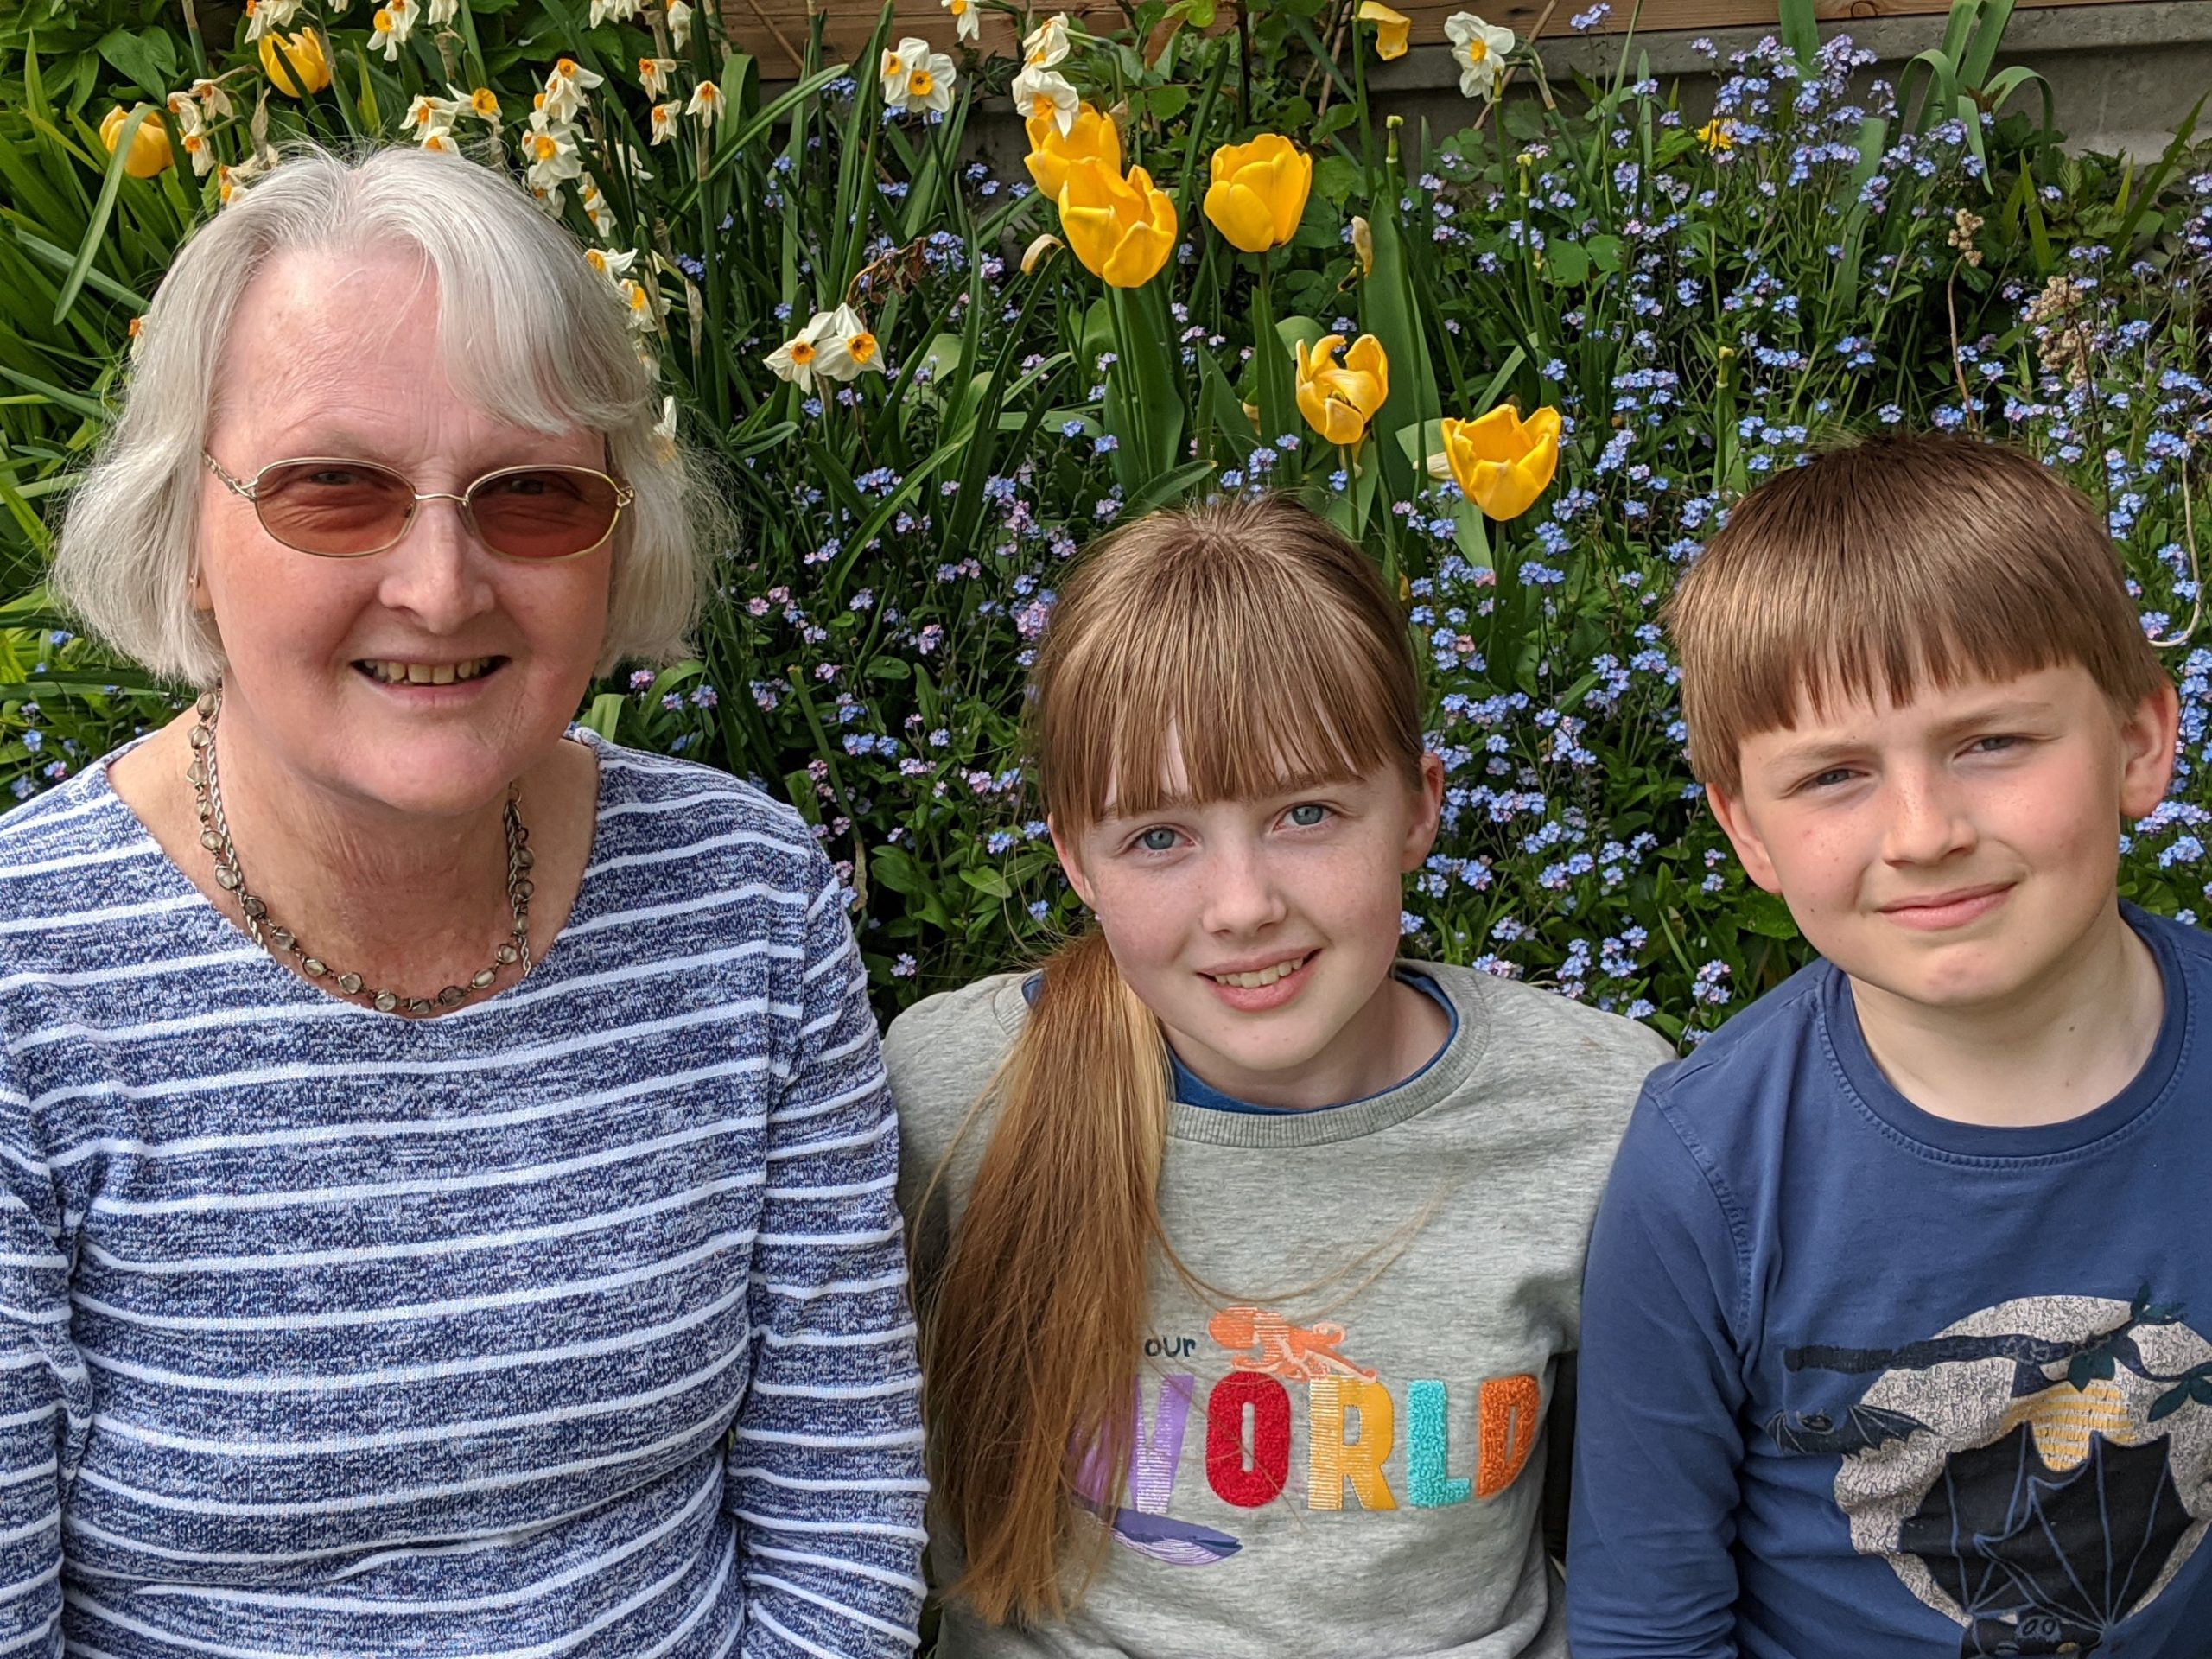 Cathy Towers and her two older grandchildren